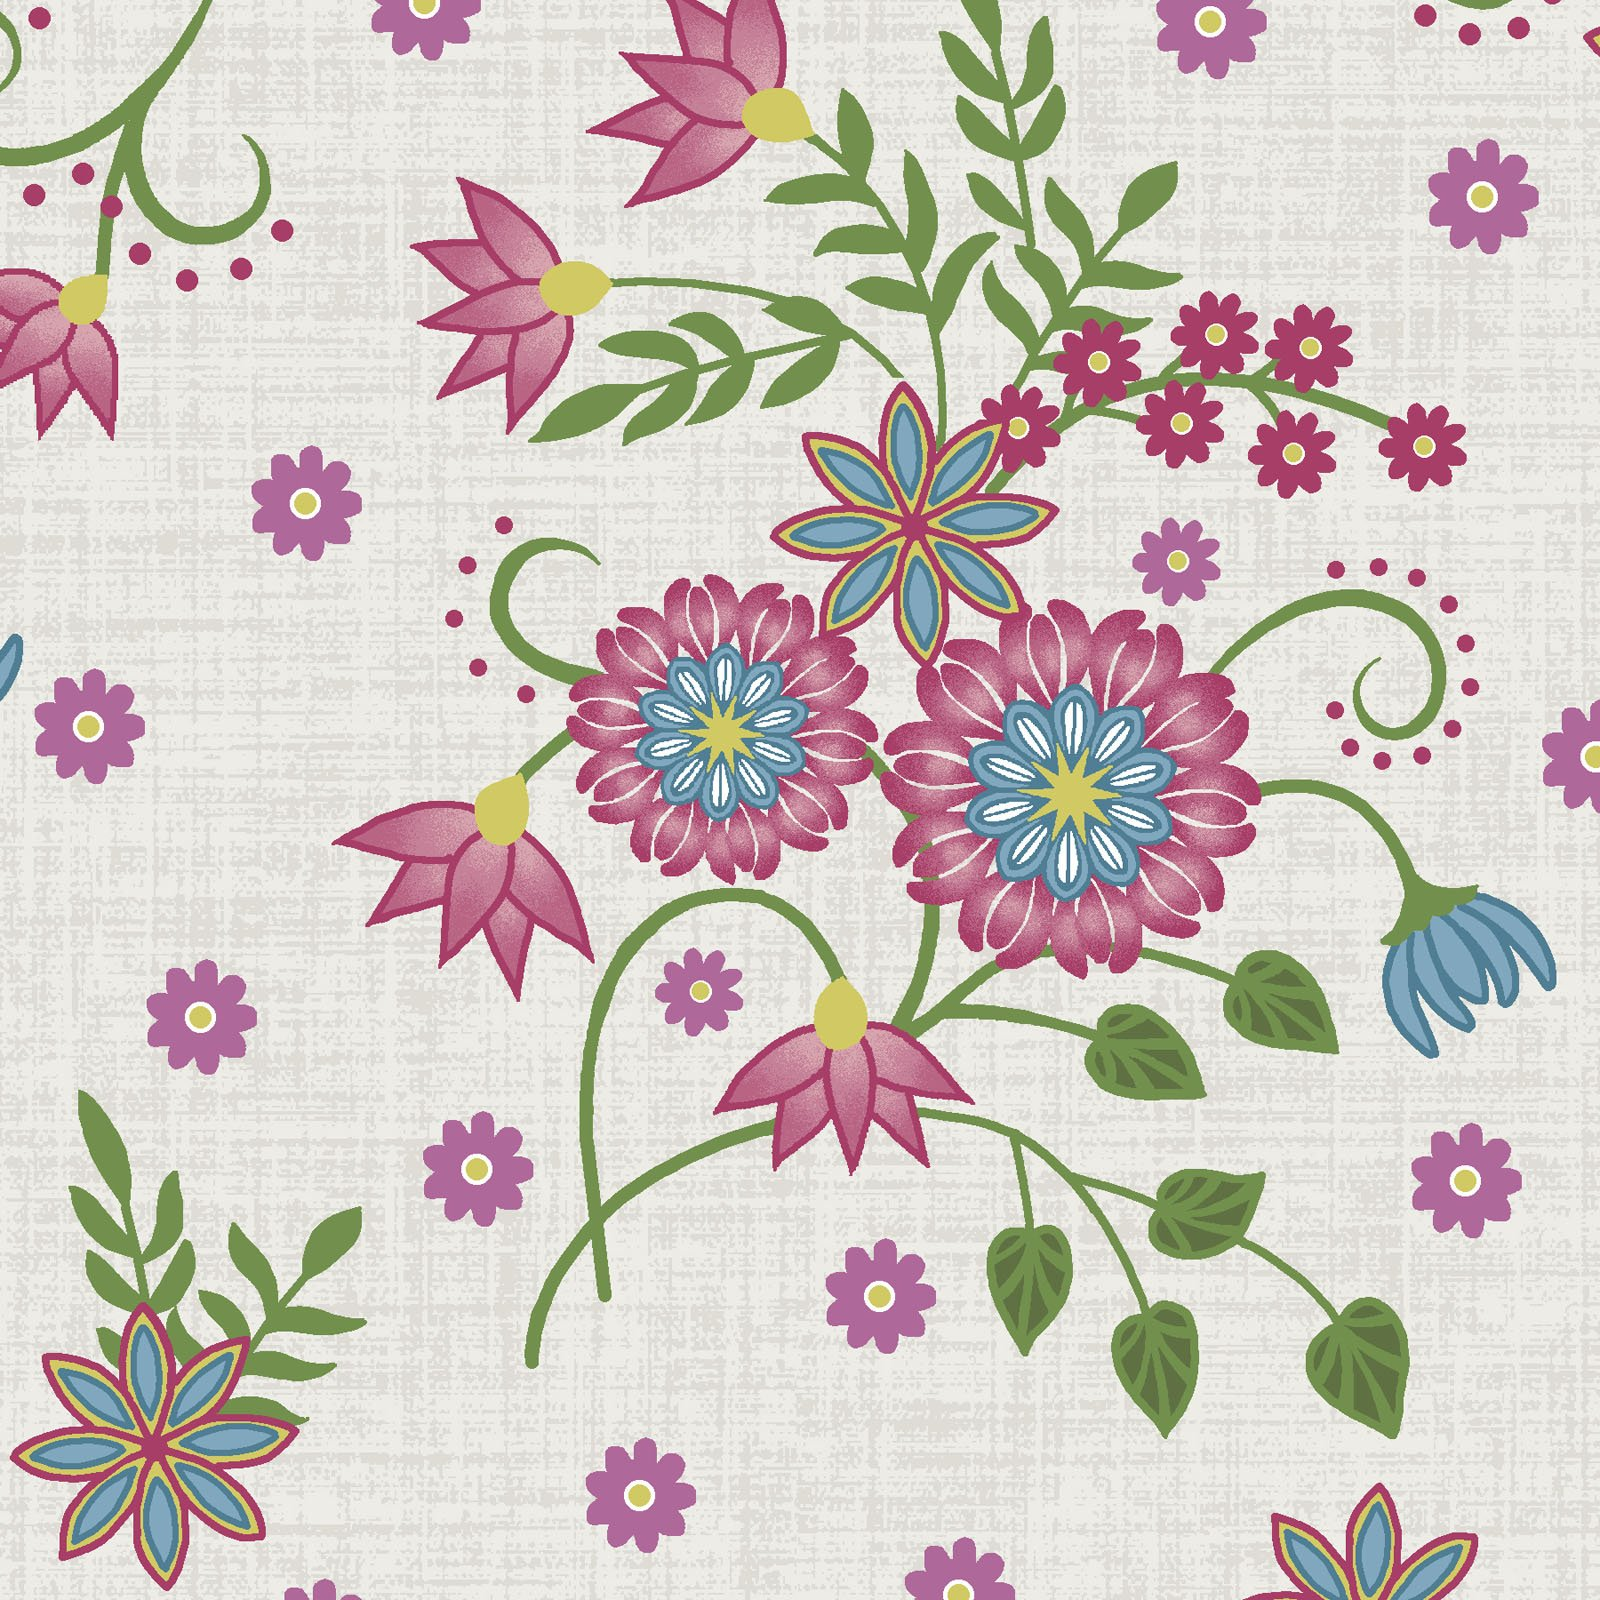 EESC-9881 E - FLOWER & VINE BY MONIQUE JACOBS FLORAL ALLOVER CREAM - AVAILABLE TO ORDER